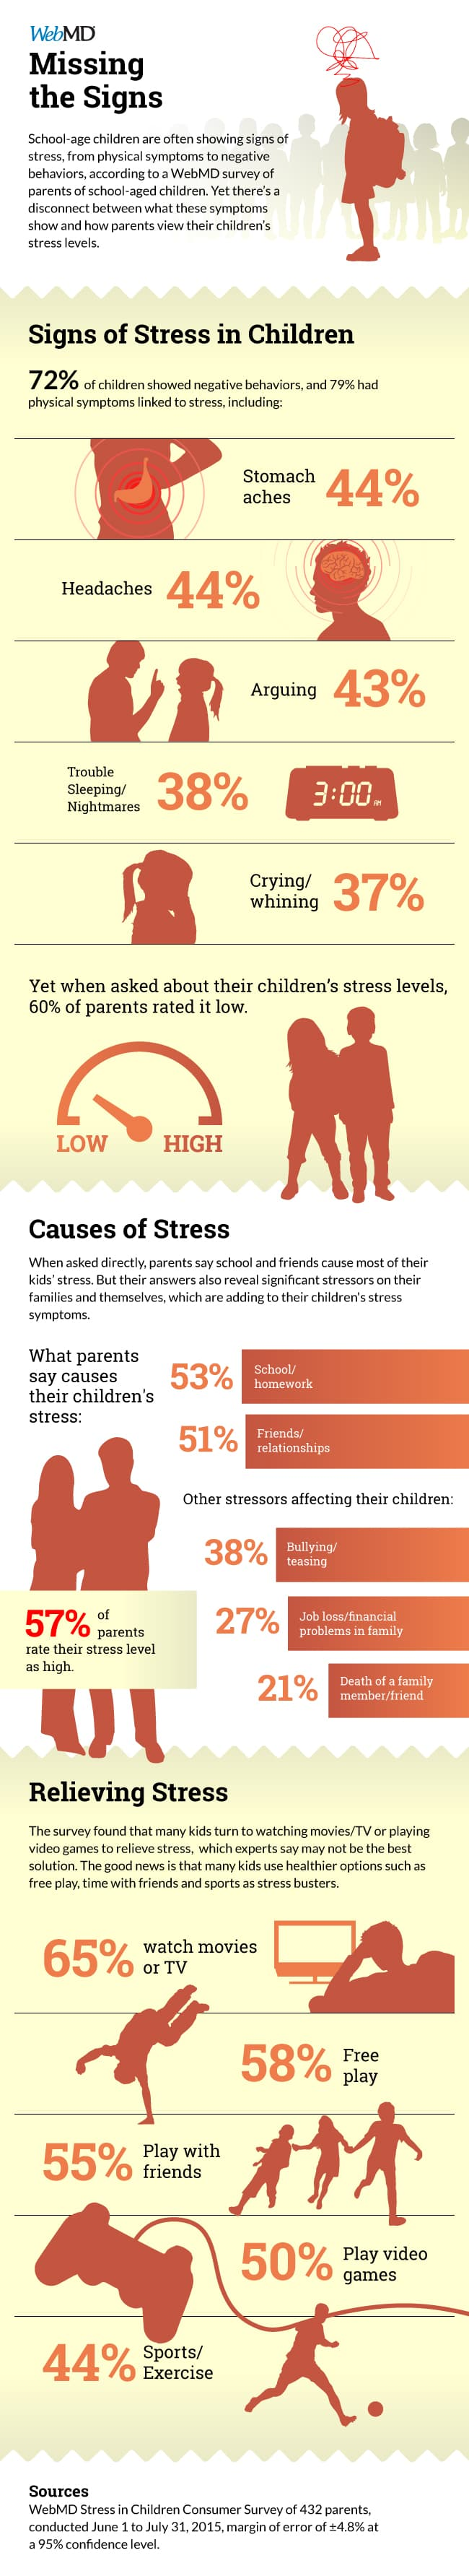 Kids and Stress